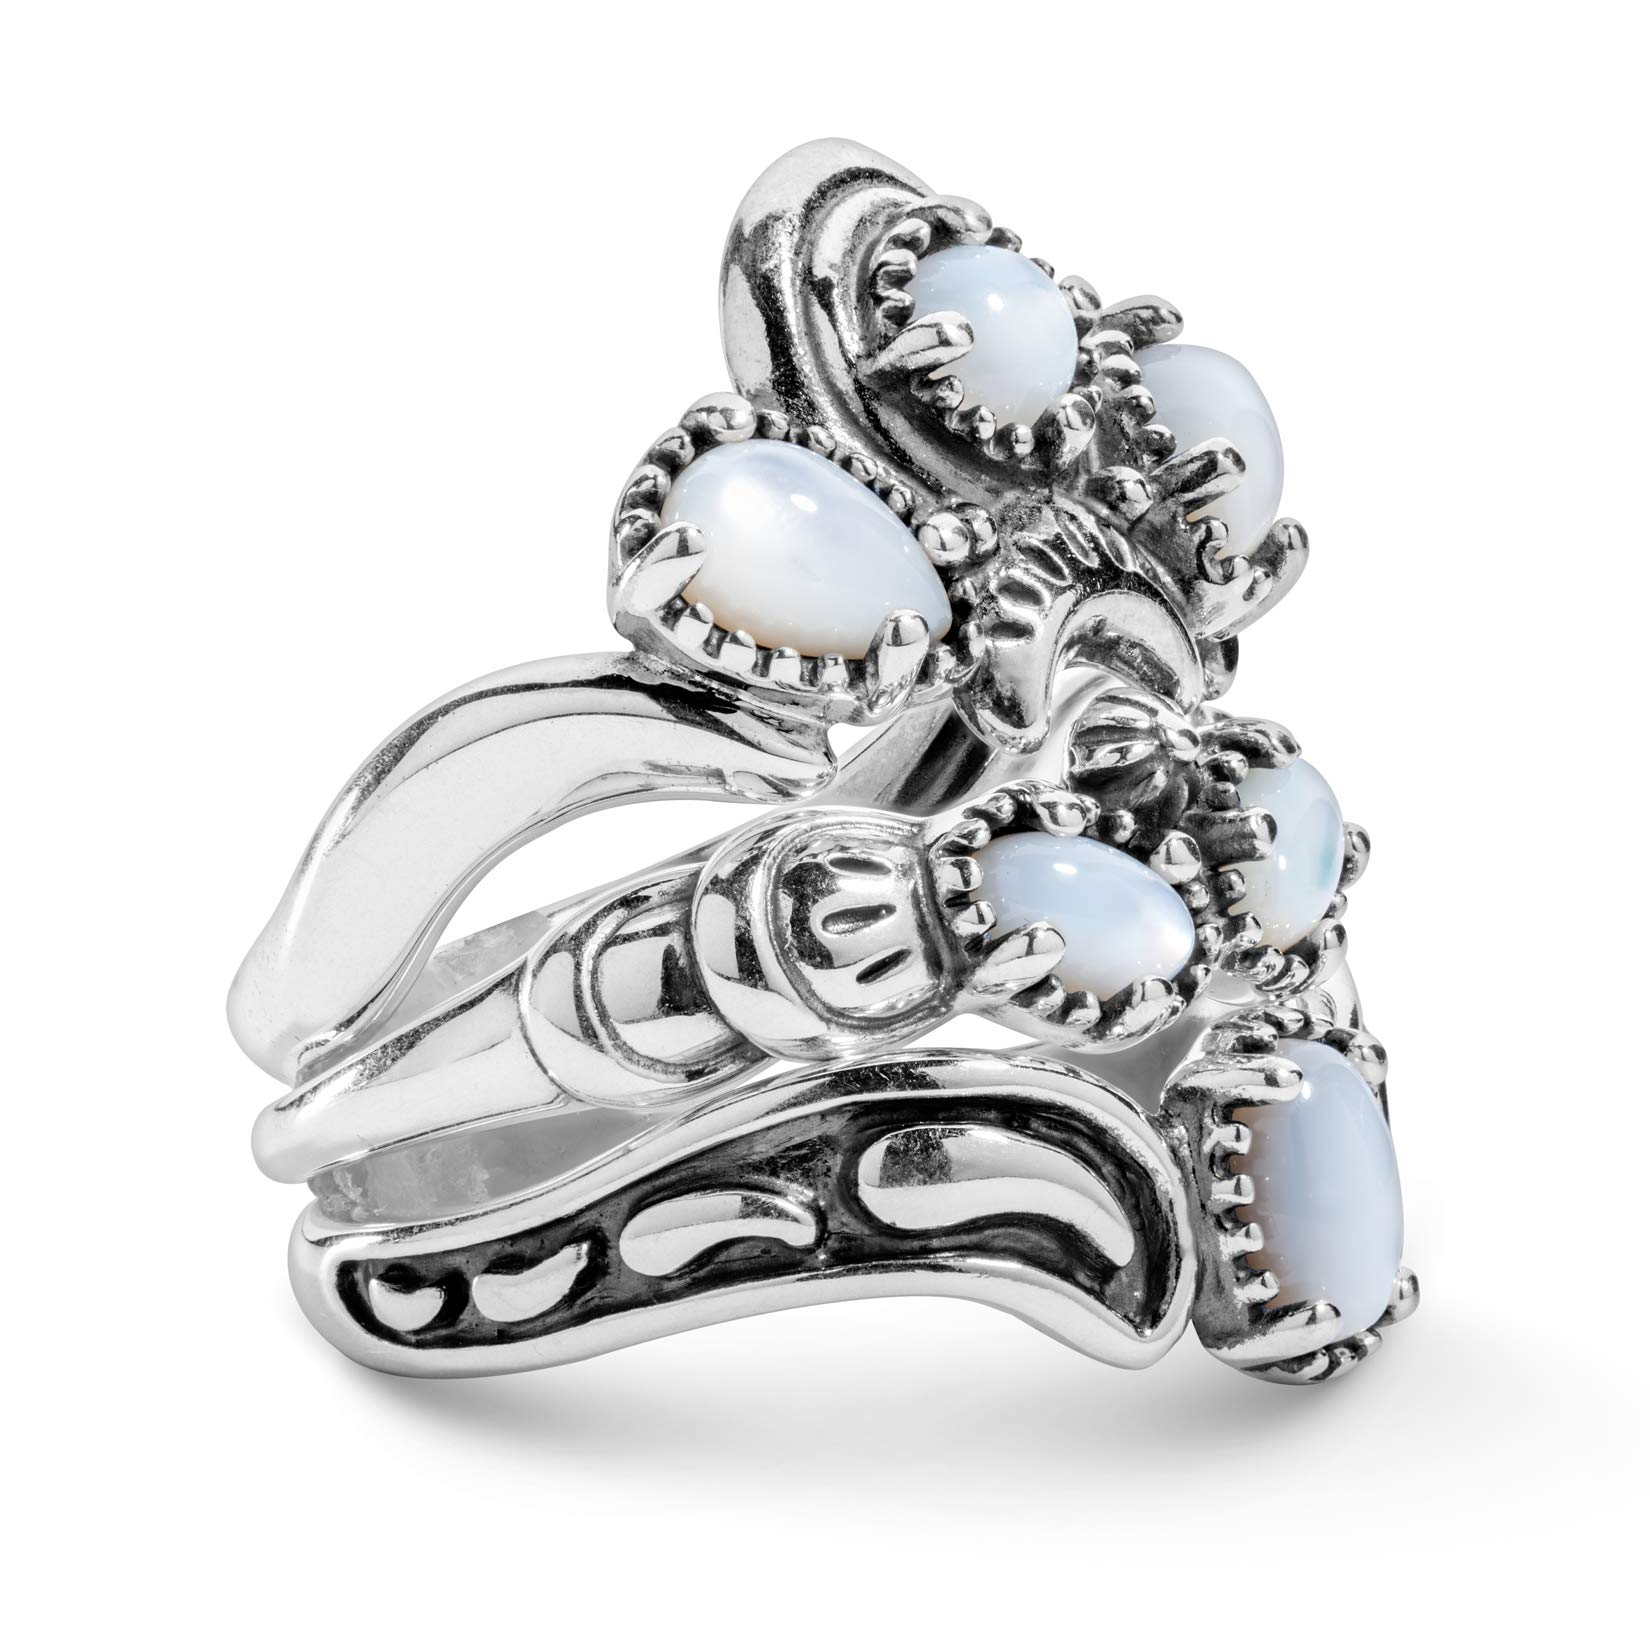 American West Sterling Silver White Mother of Pearl Stacking Ring Set Sizes 6